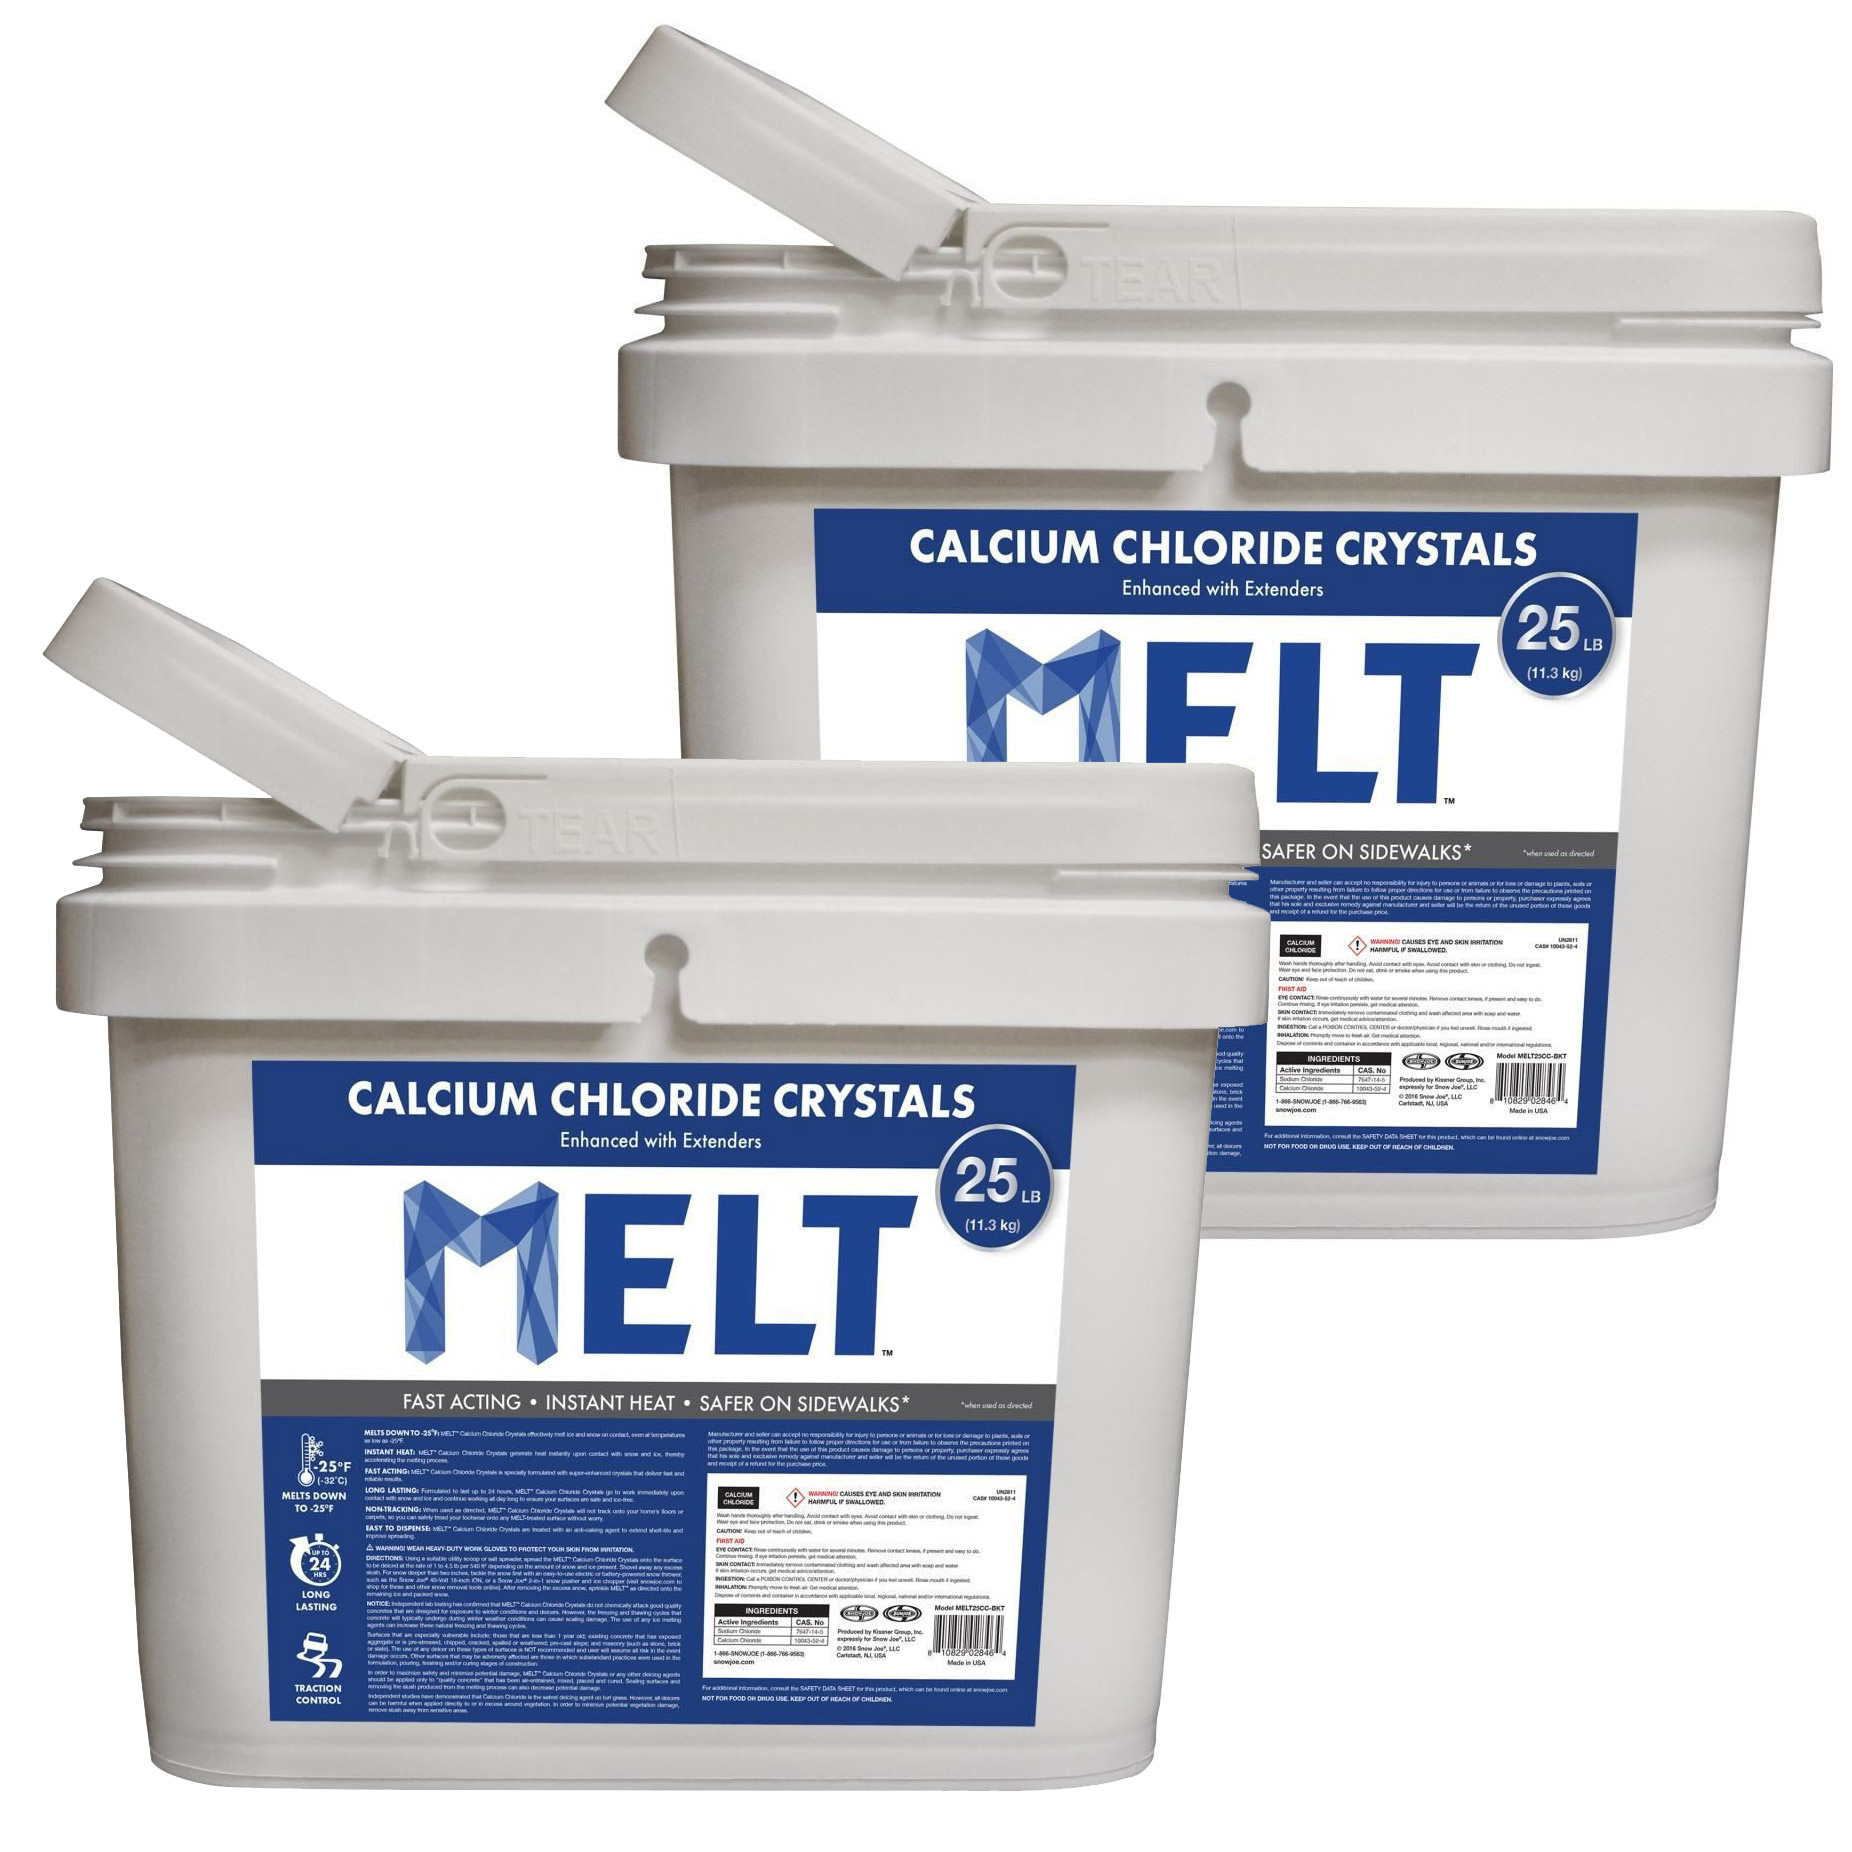 Snow Joe Melt Ice Removal Calcium Chloride Crystals 25 Pound Bucket (2 Pack)